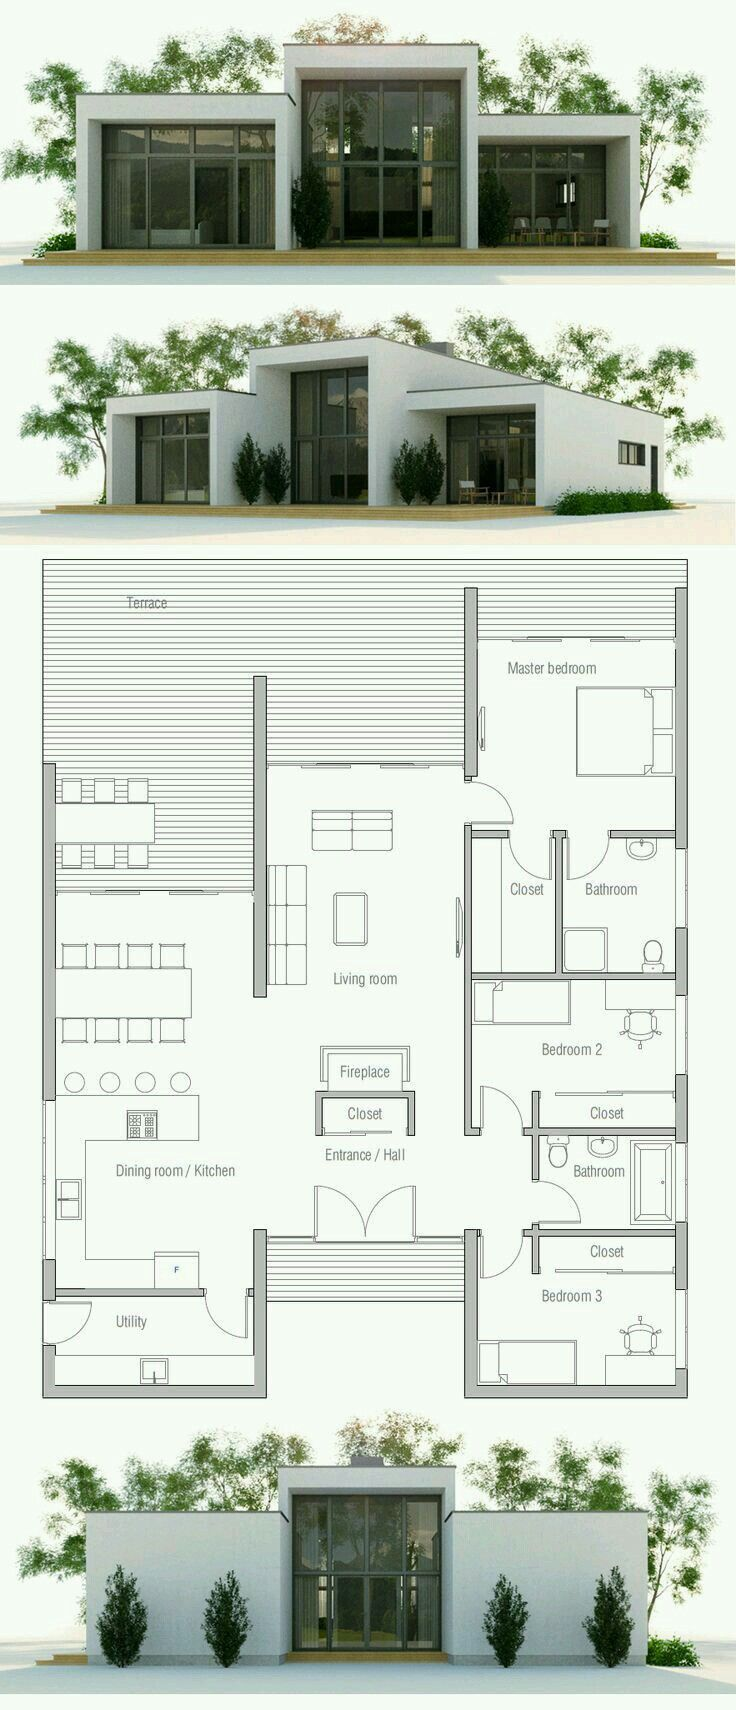 Best Kitchen Gallery: Pin By Betsie Van Der Merwe On Small House Plans Pinterest of Diy Shipping Container Home Plans  on rachelxblog.com